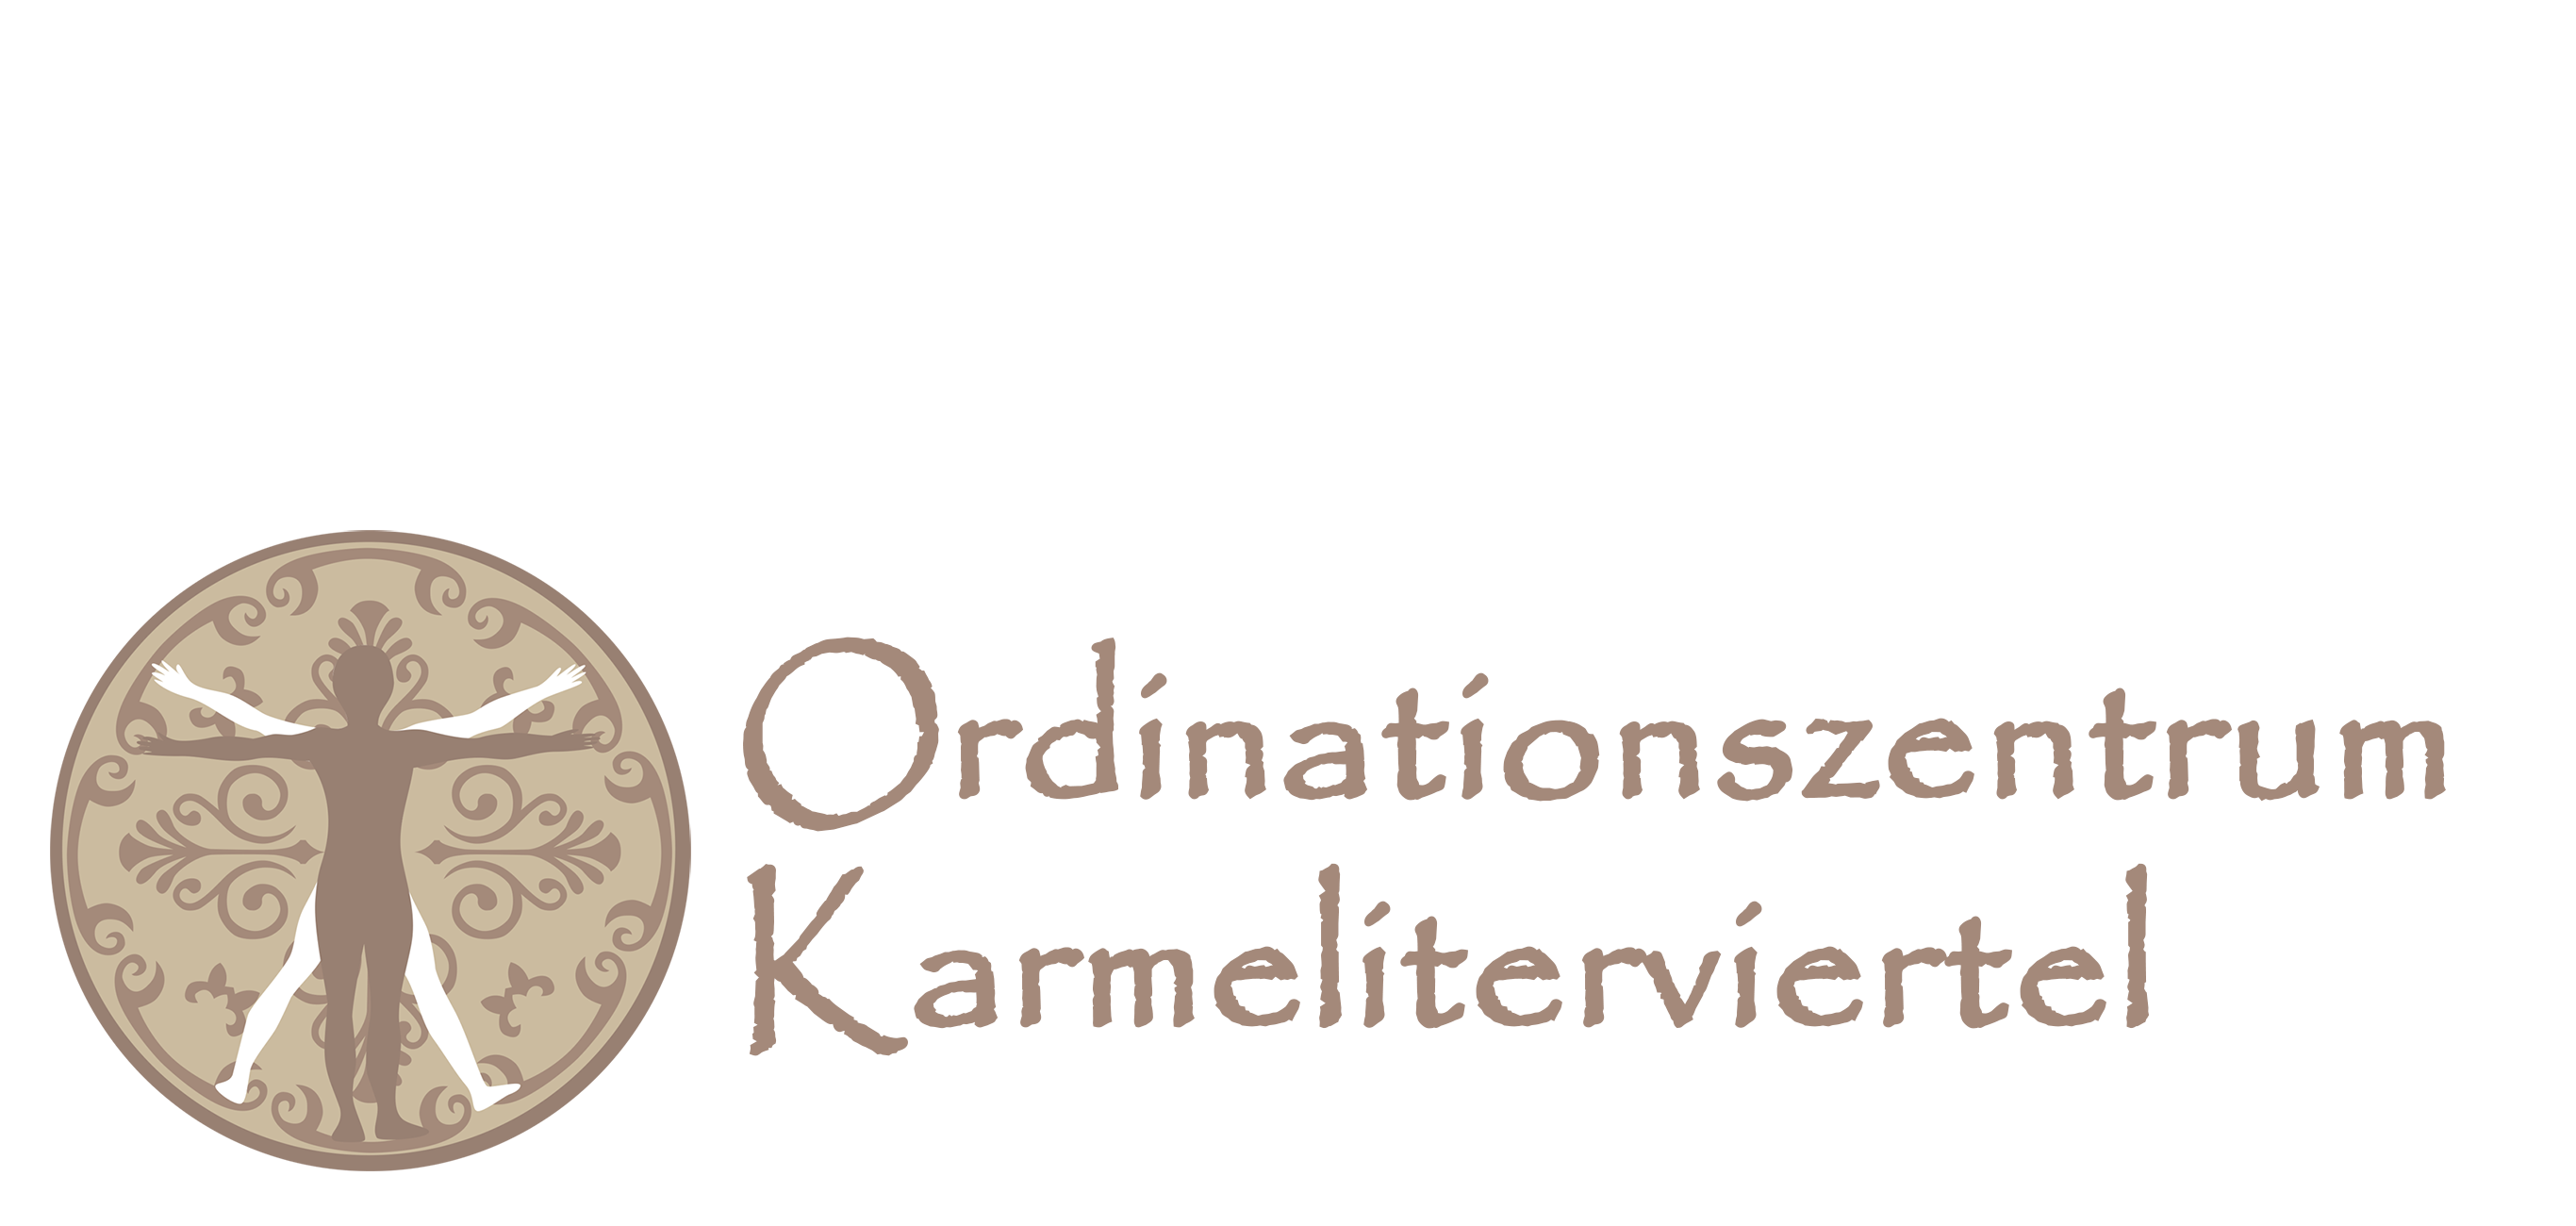 Ordinationszentrum Karmeliterviertel